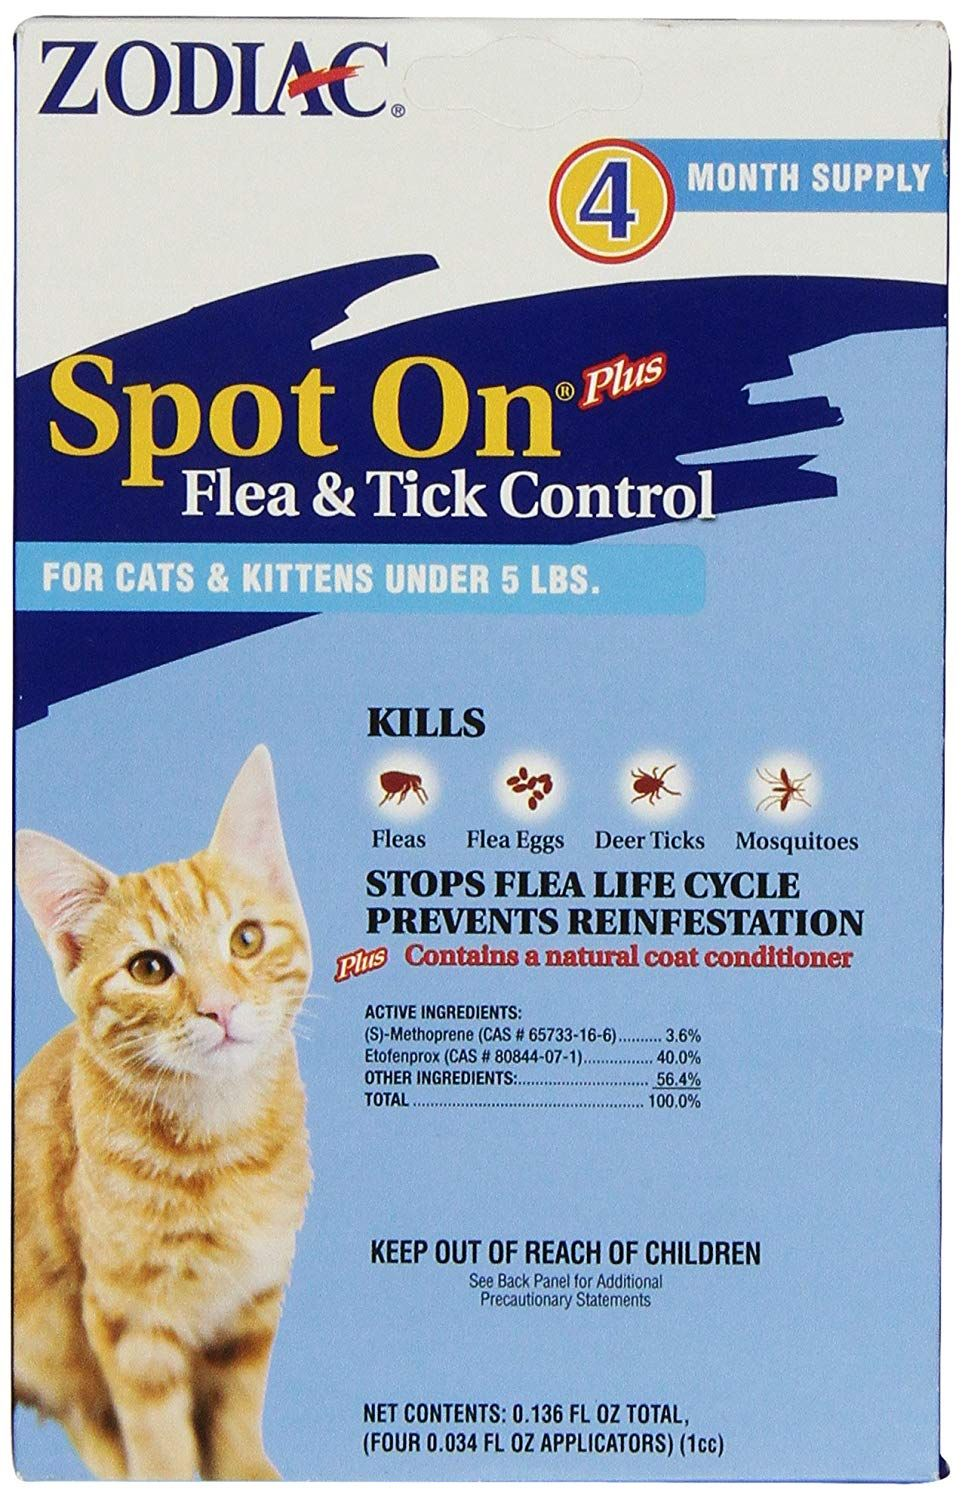 Zodiac Spot On Plus Flea And Tick Control For Cats And Kittens Under 5 Poundsr 4 Month Supply More Info Cou Tick Control Flea And Tick Flea Control For Cats